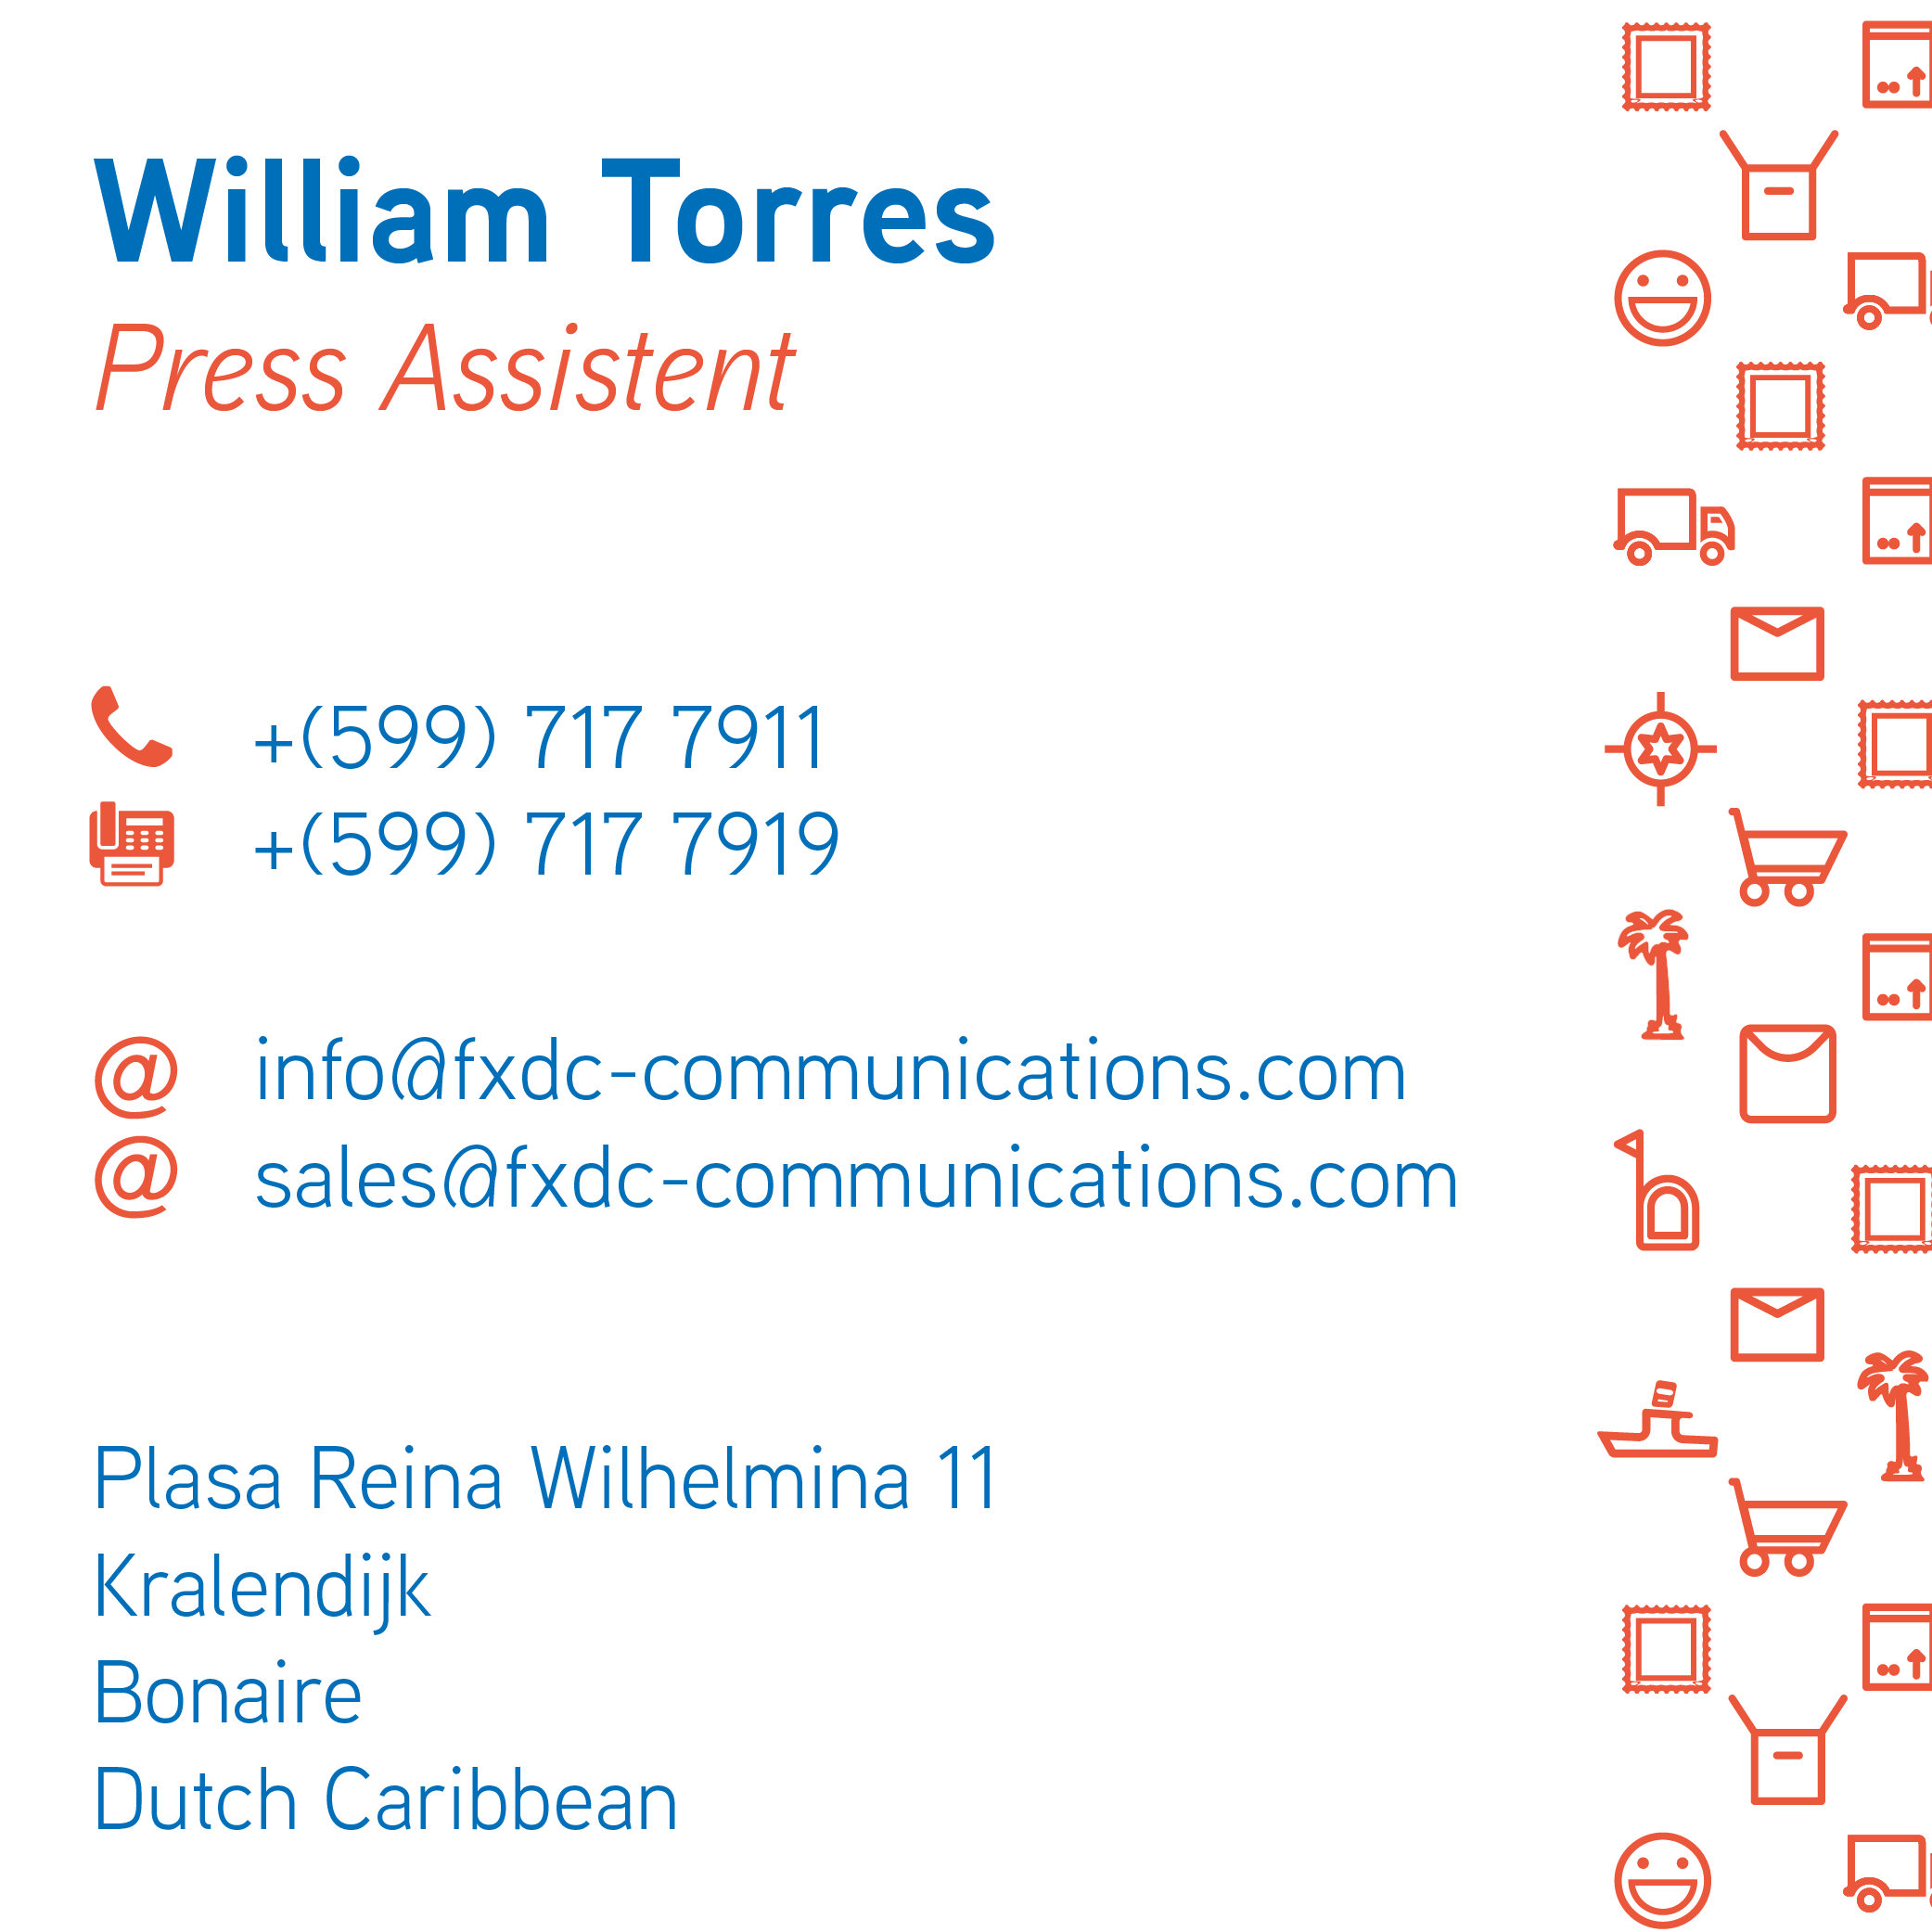 print bonaire, banner, 4 sale bonaire, stickers bonaire, business card bonaire, web design, seo, social media, mechandise bonaire, business card bonaire, brochure bonaire, print bonaire, marketing bonaire, advertising bonaire, design bonaire, visite kaart bonaire